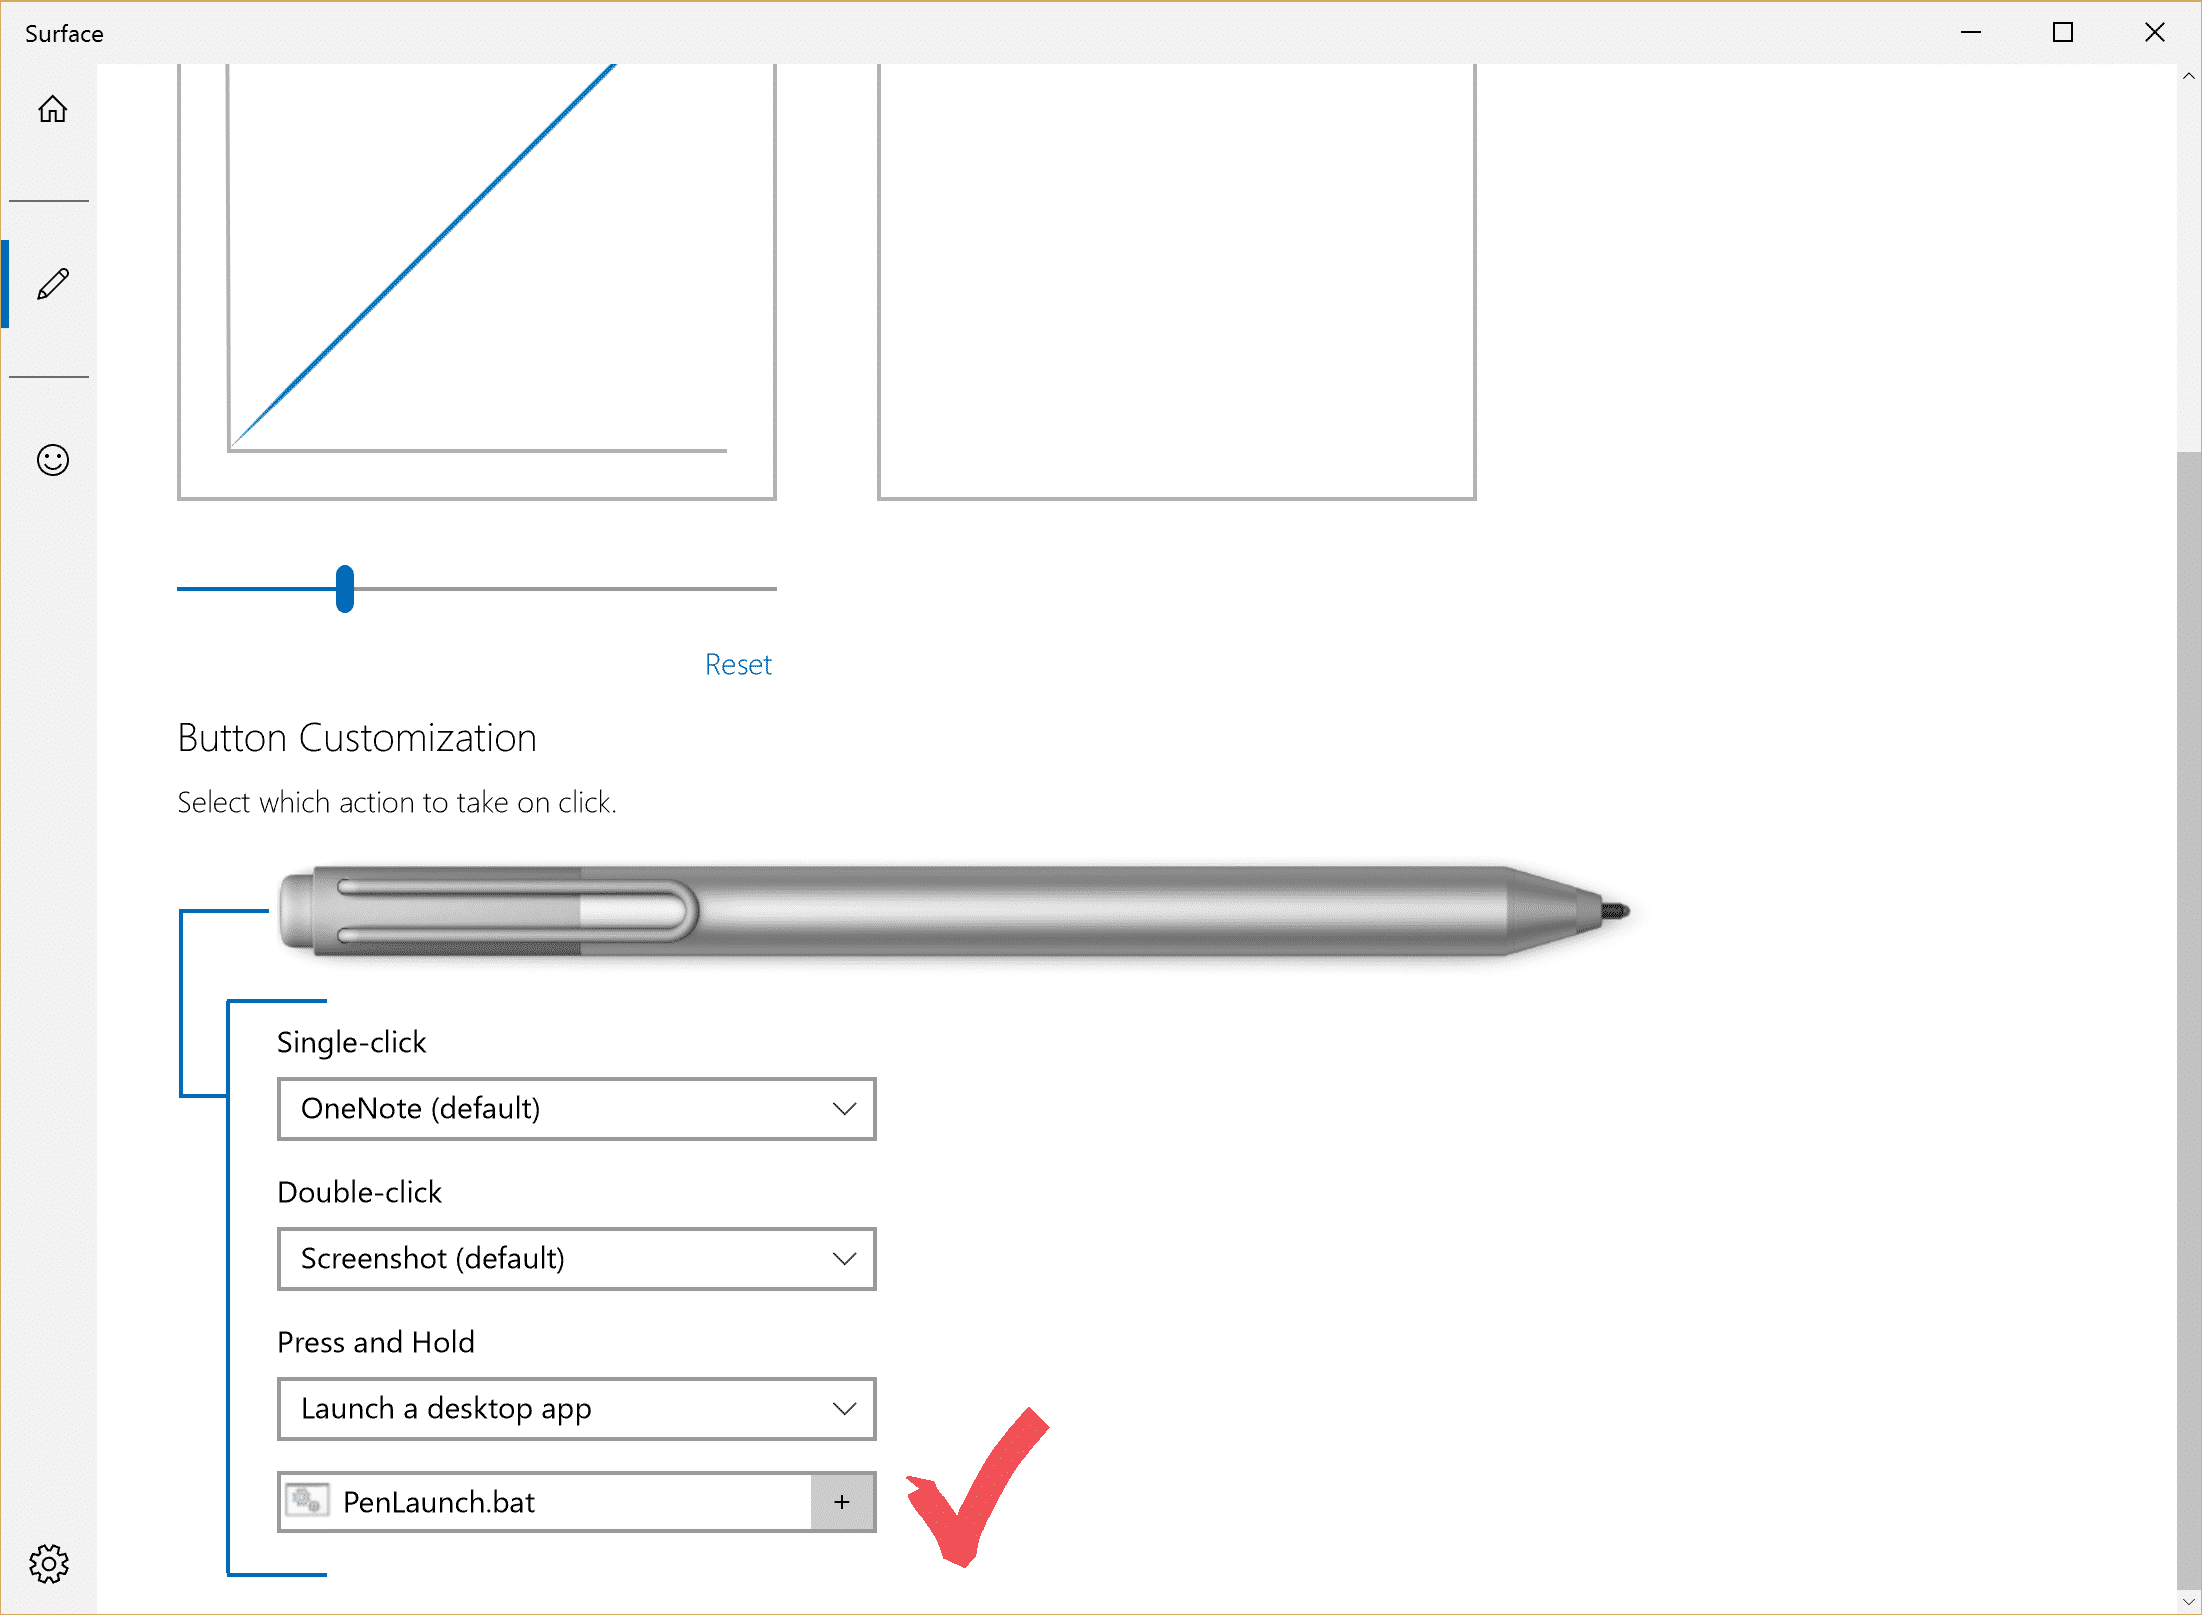 HowTo - Launch multiple Apps and Programs with single Pen